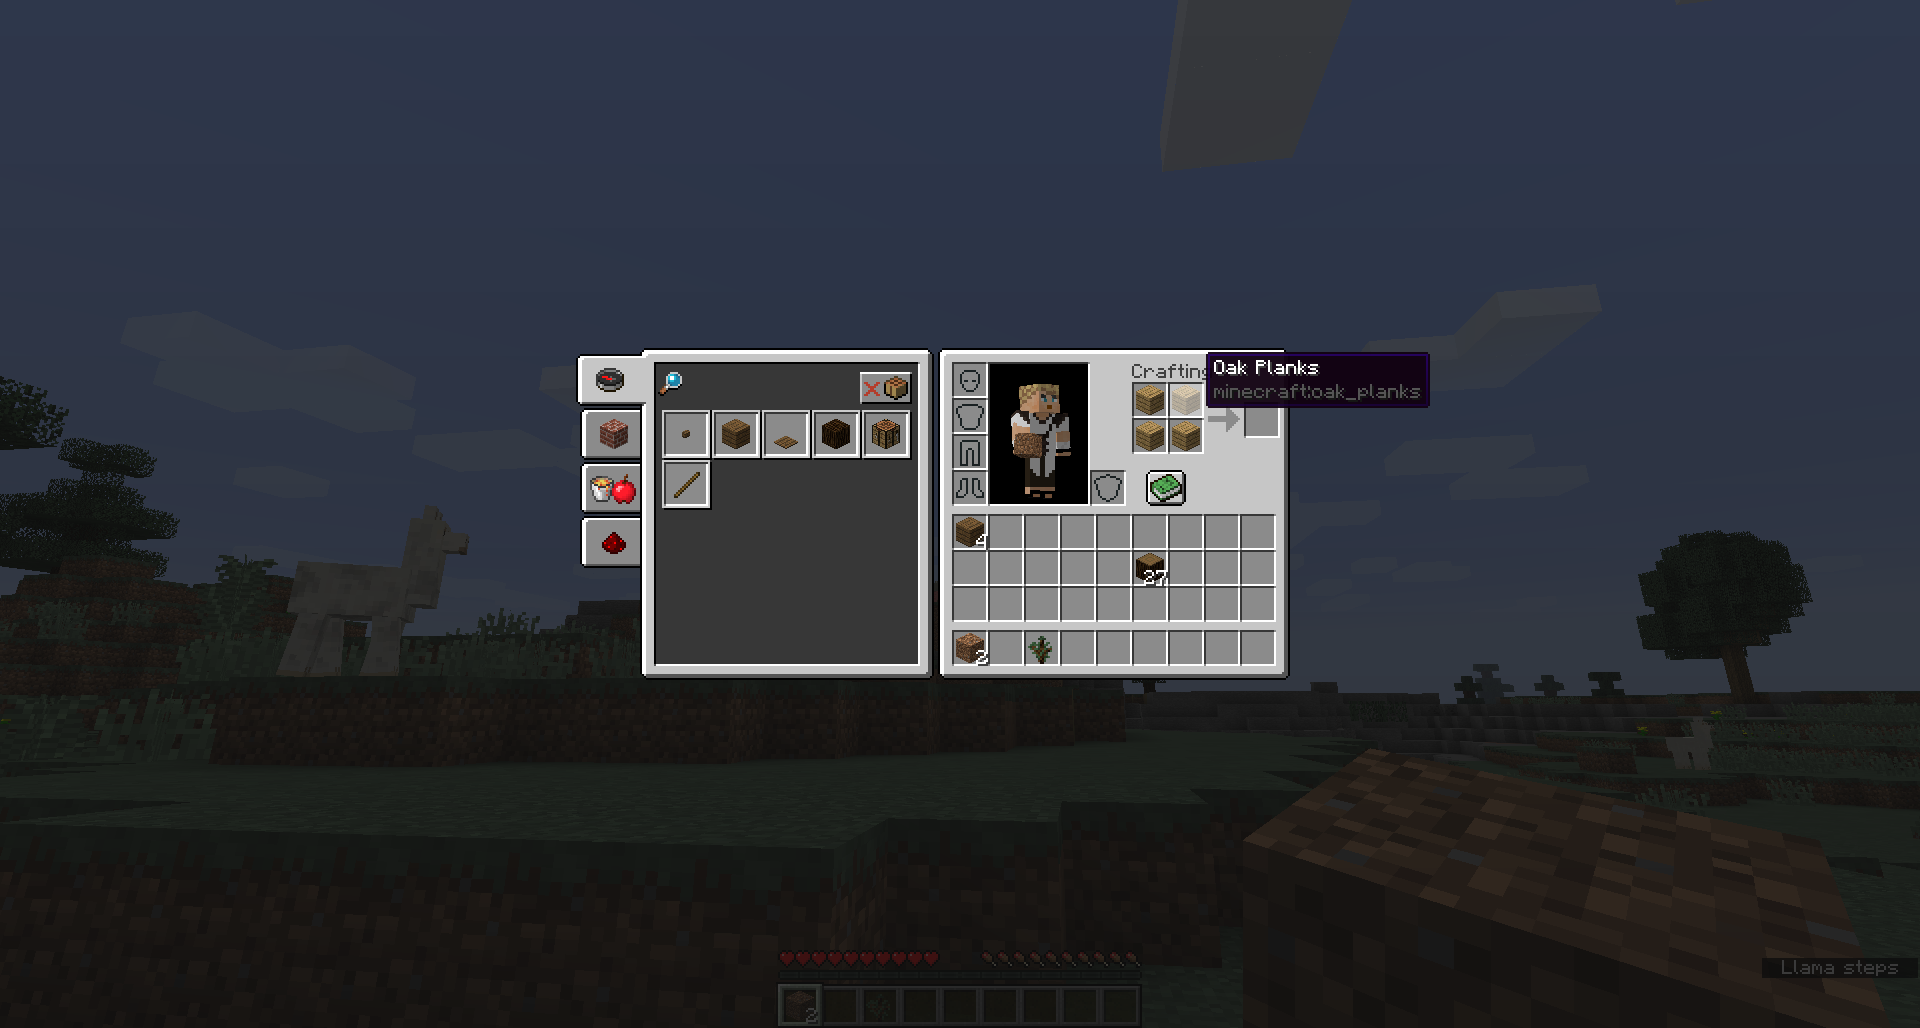 Crafting Table Shortcuts